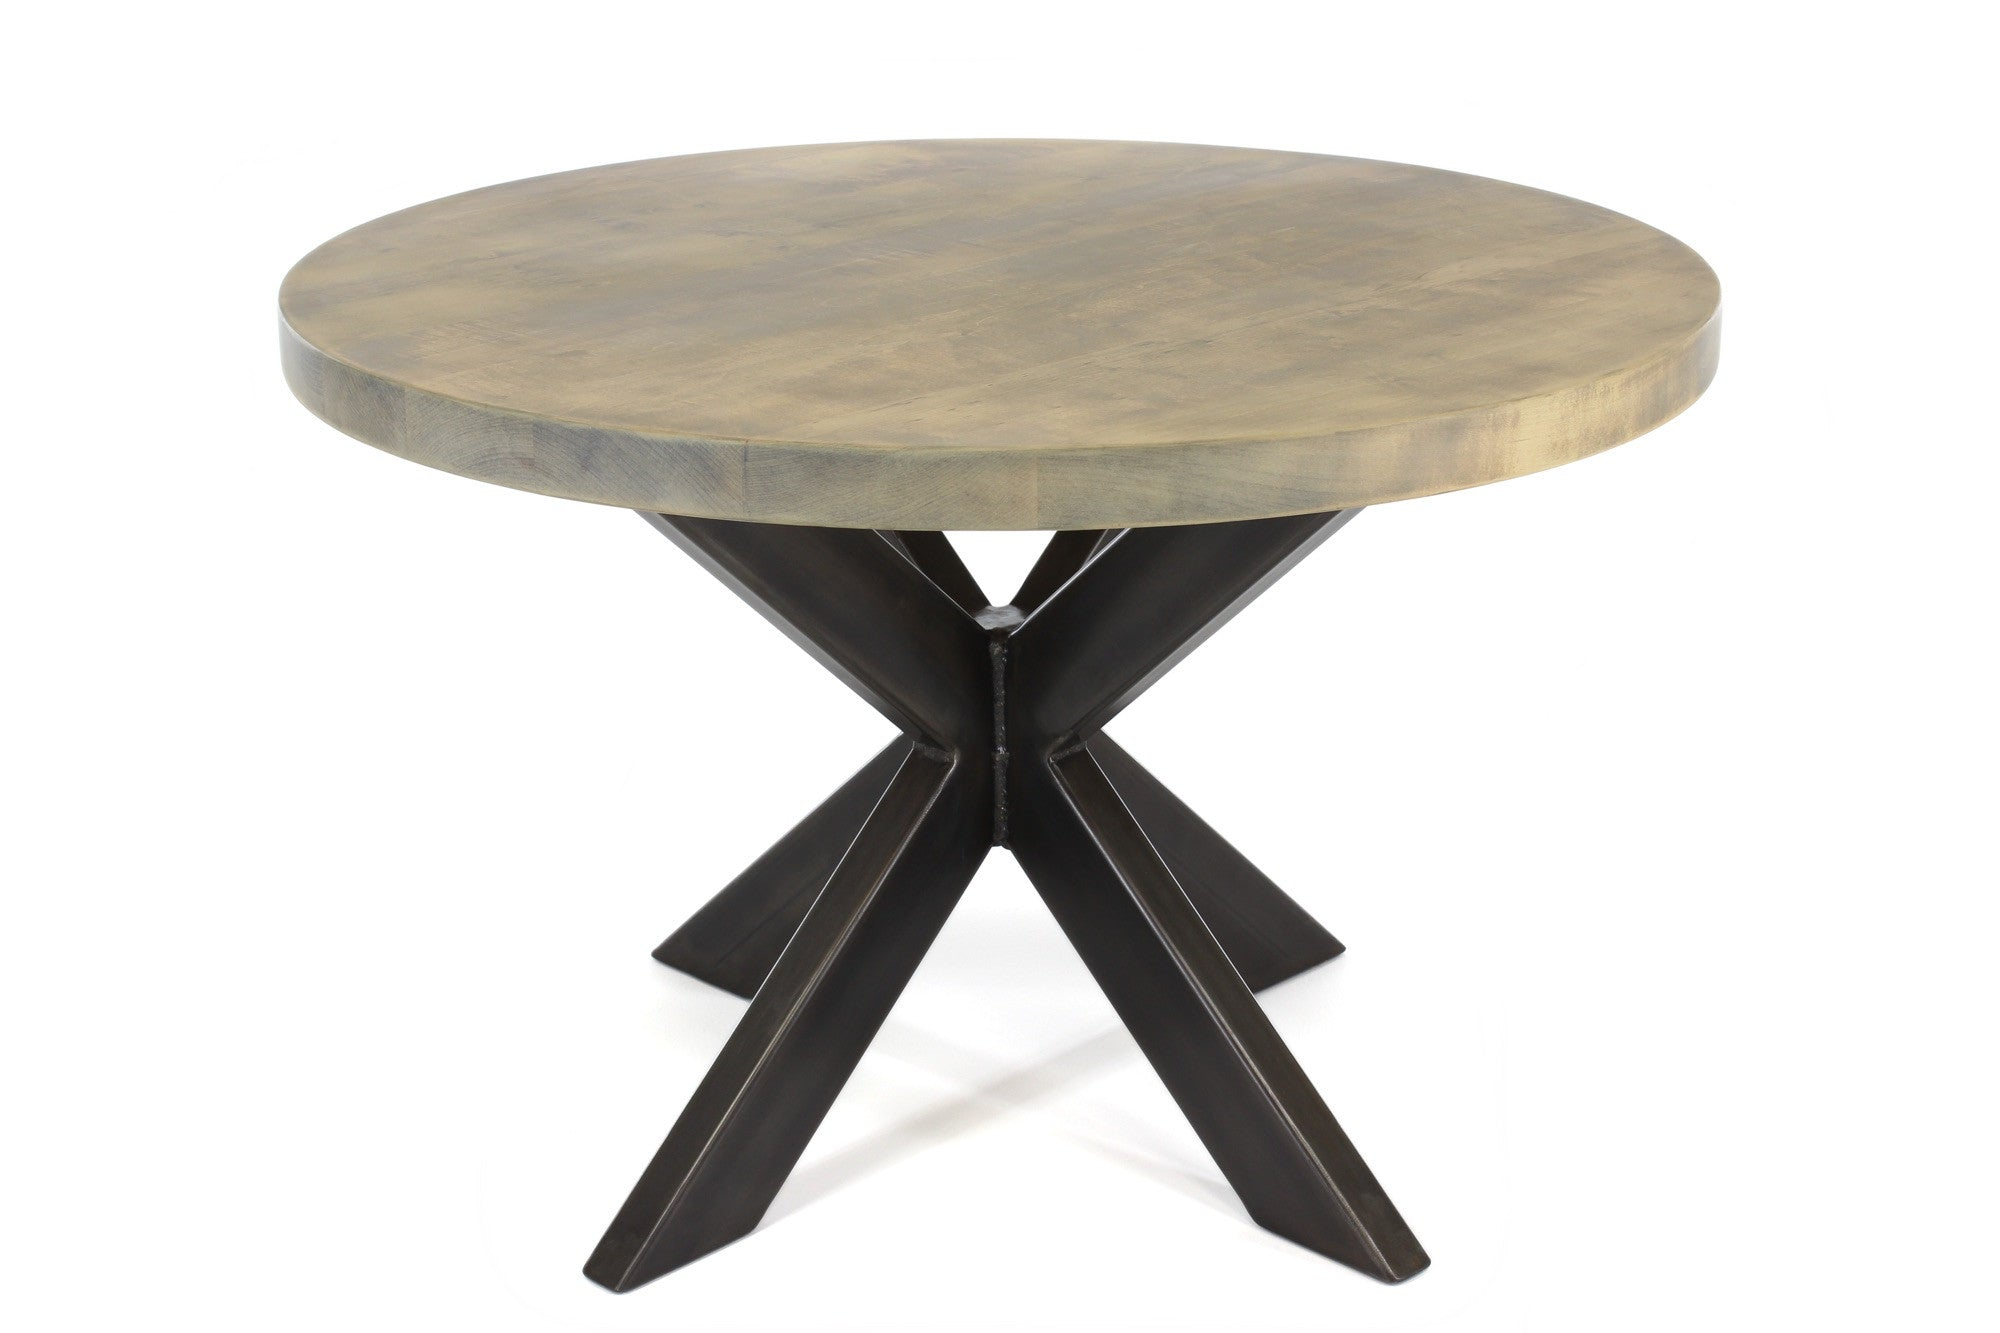 jak dining table | worn maple wood finish with waxed steel